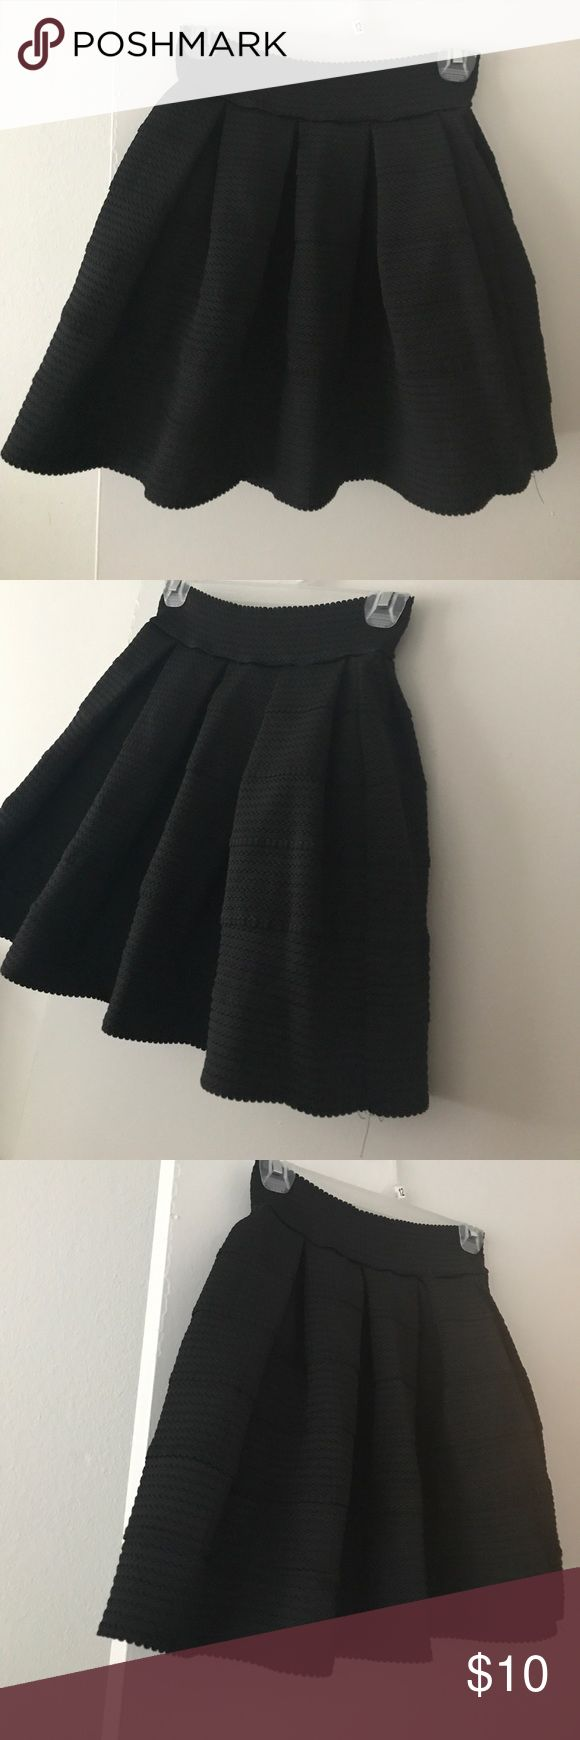 Playful Textured Pleated Skirt This skirt is heavy material. The waist is stretch so it provides a defined waistline. There is no zipper or button closure as it is a pull on skirt. Looks great with a dress shirt tucked in and even a t-shirt with flats. Super easy to look dressed up without trying. Excellent condition. Skirts